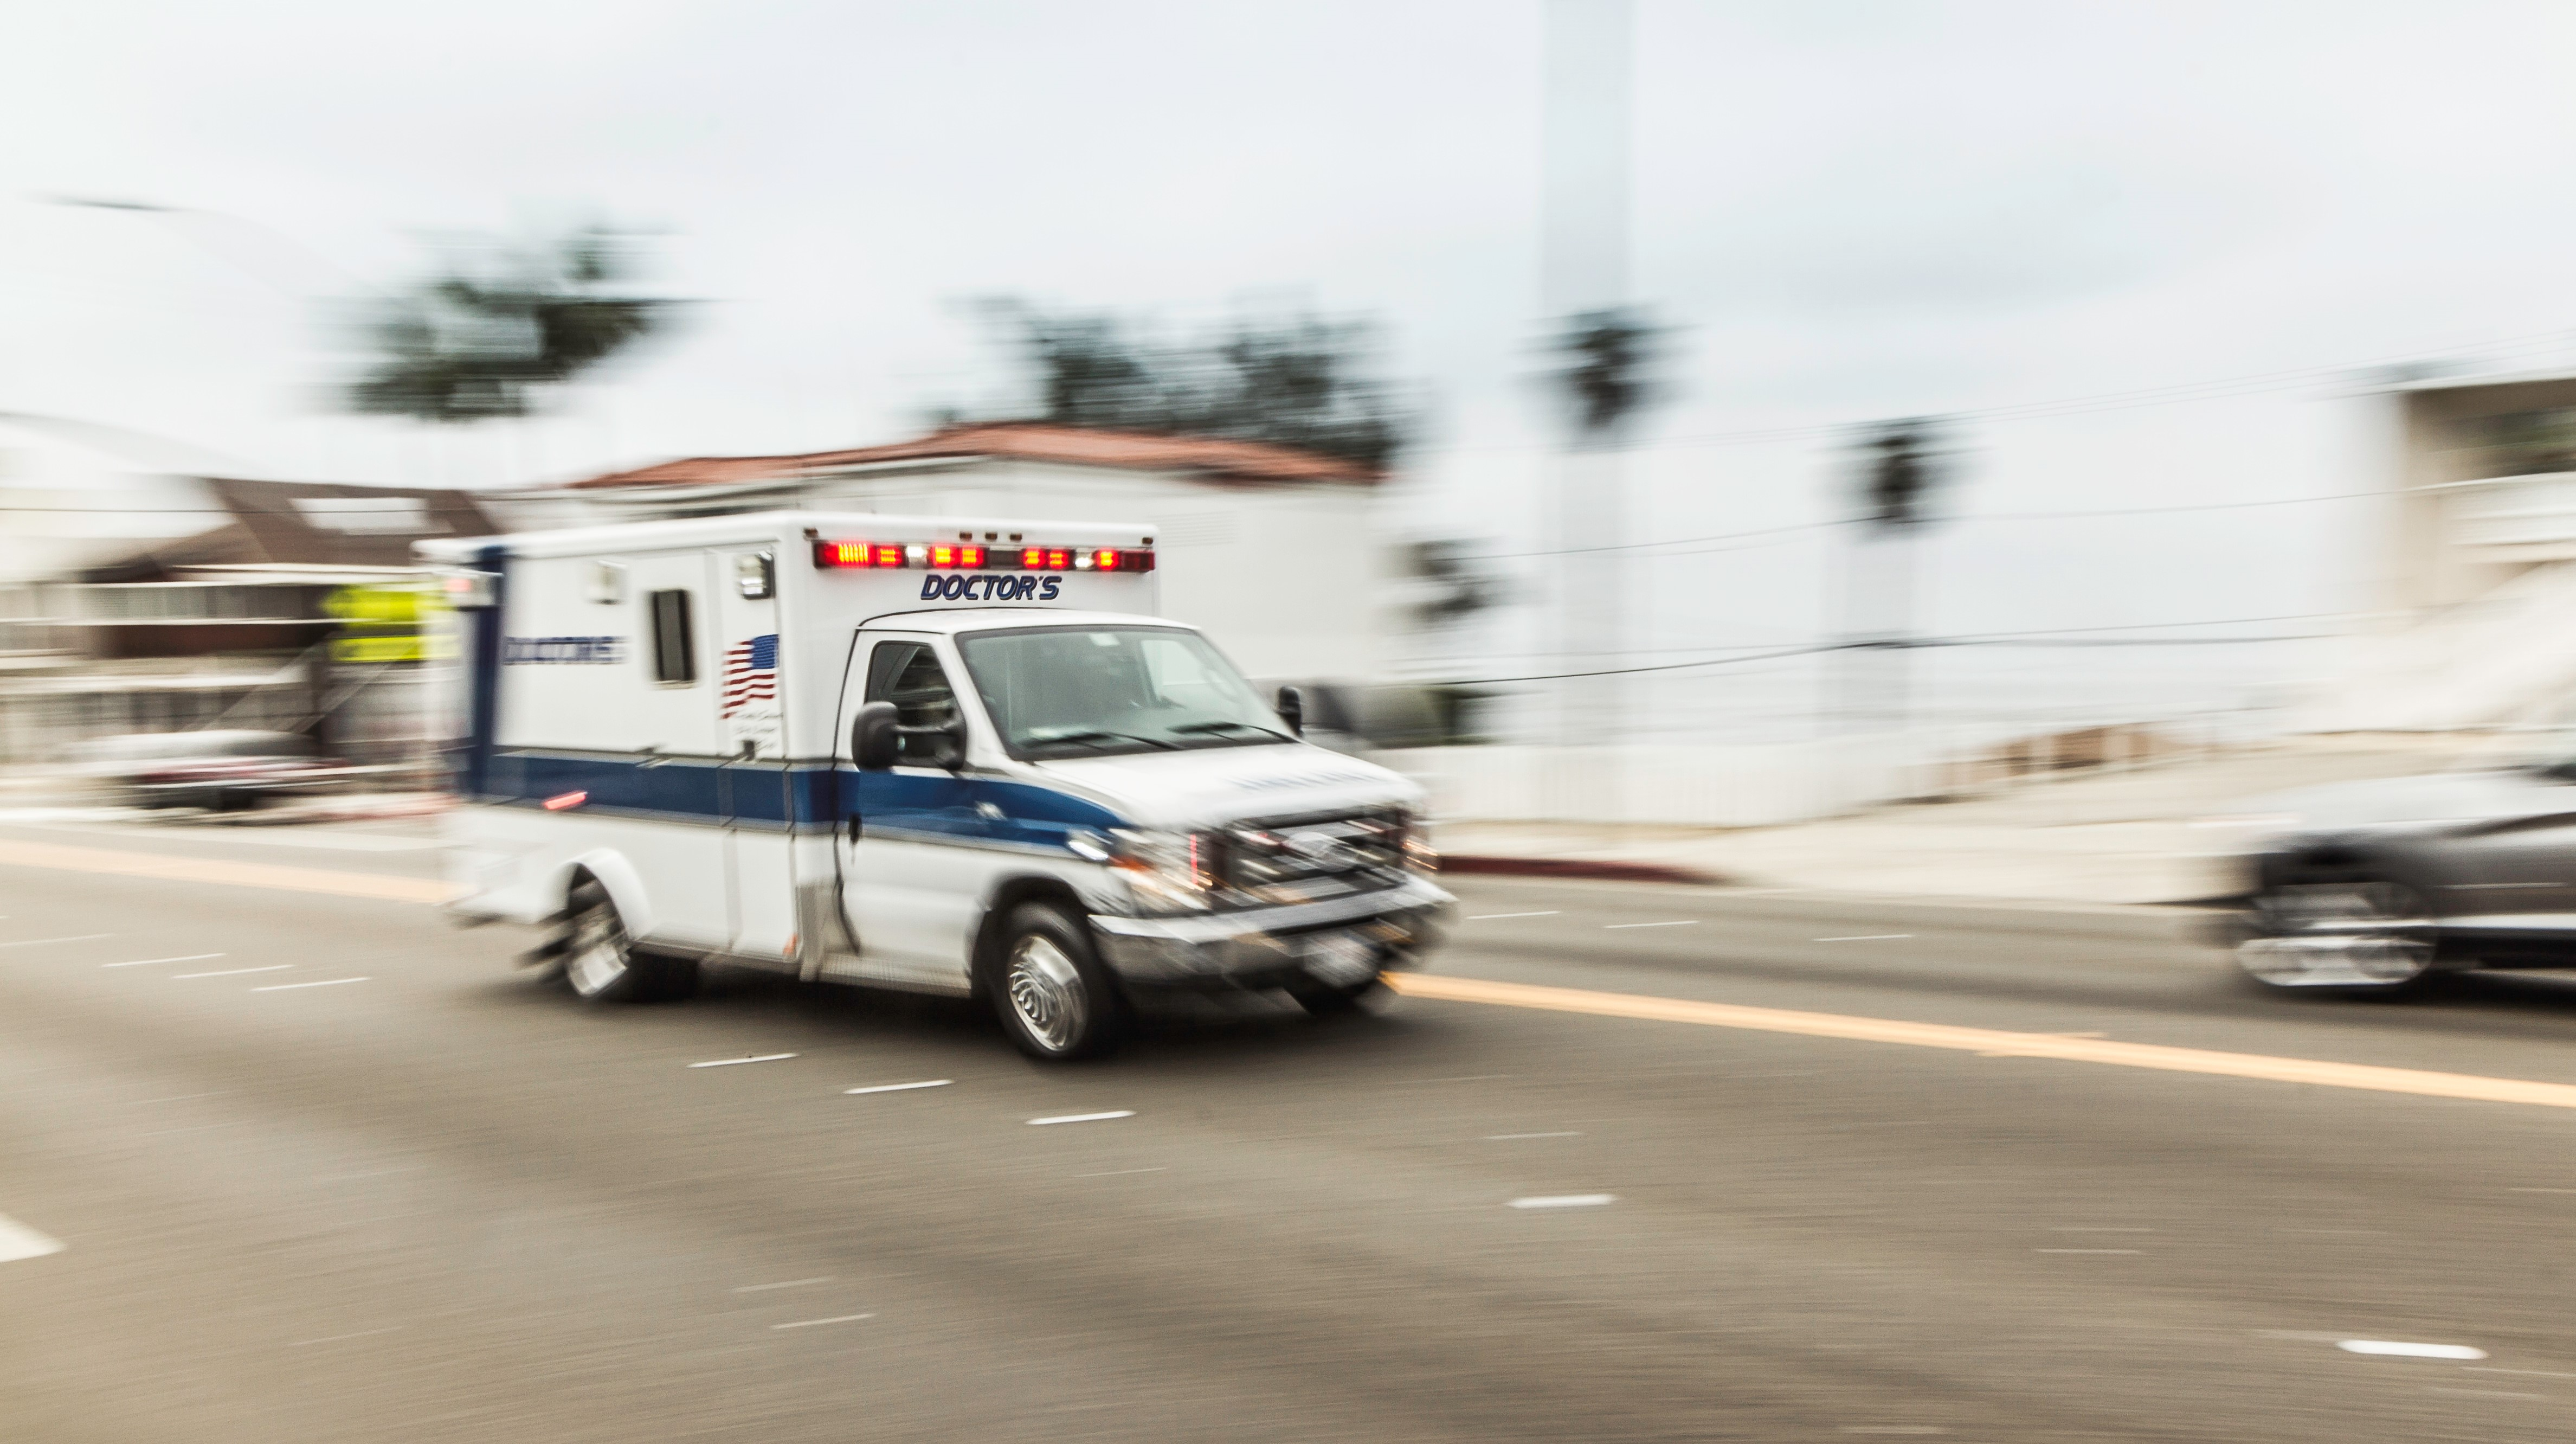 Ambulance-GettyImages-482184235-cropped